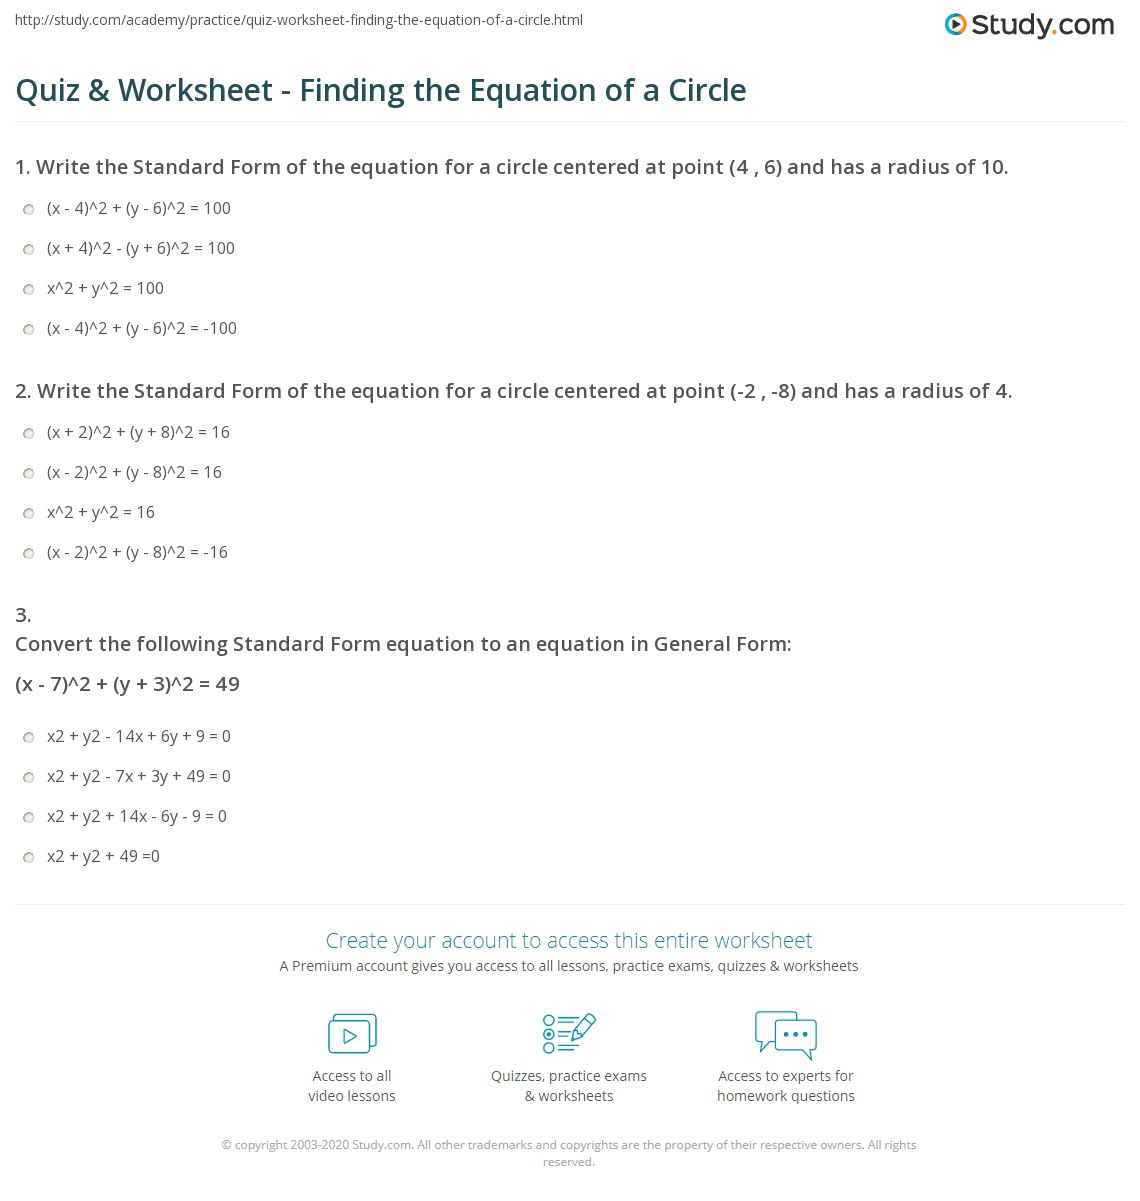 Equations Of Circles Worksheet: Quiz & Worksheet   Finding the Equation of a Circle   Study com,